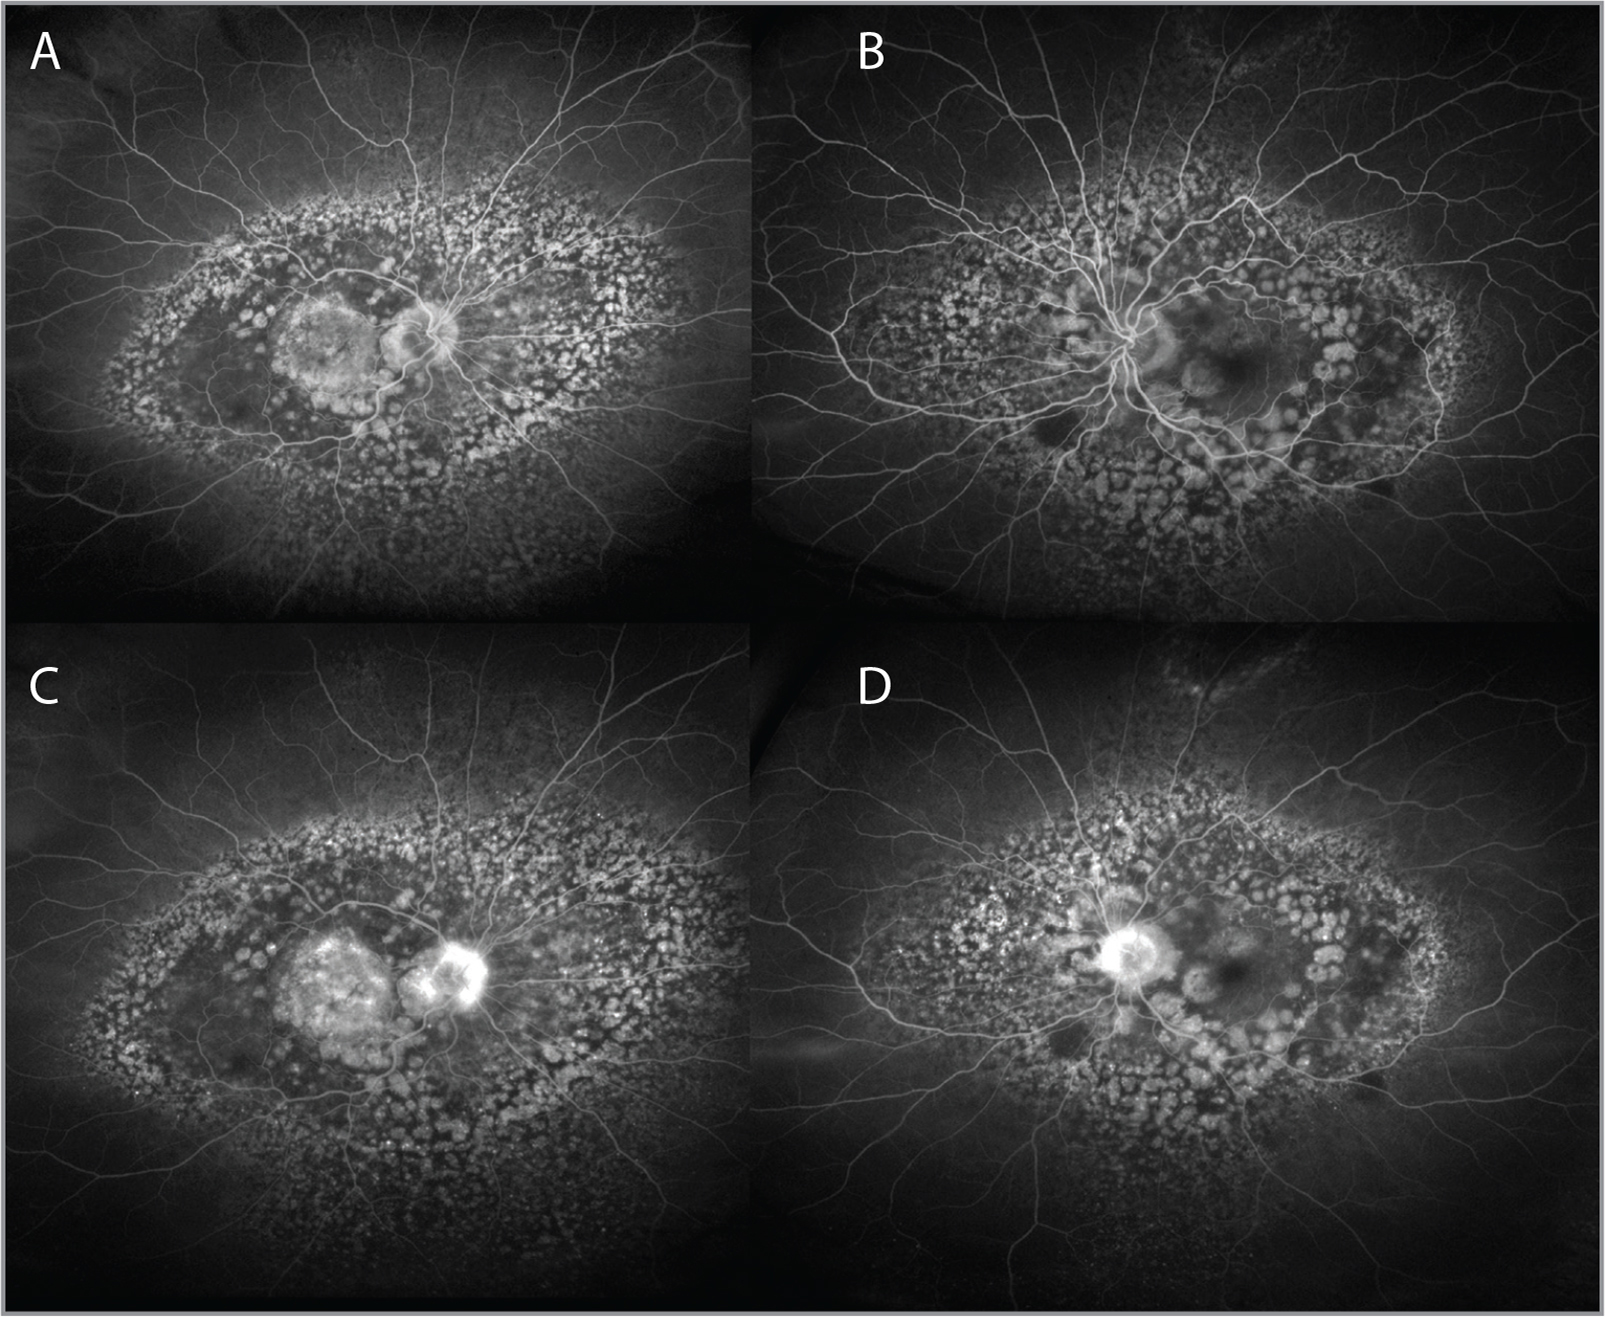 Early and late-phase fluorescein angiography of the right eye (A, C) and the left eye (B, D).